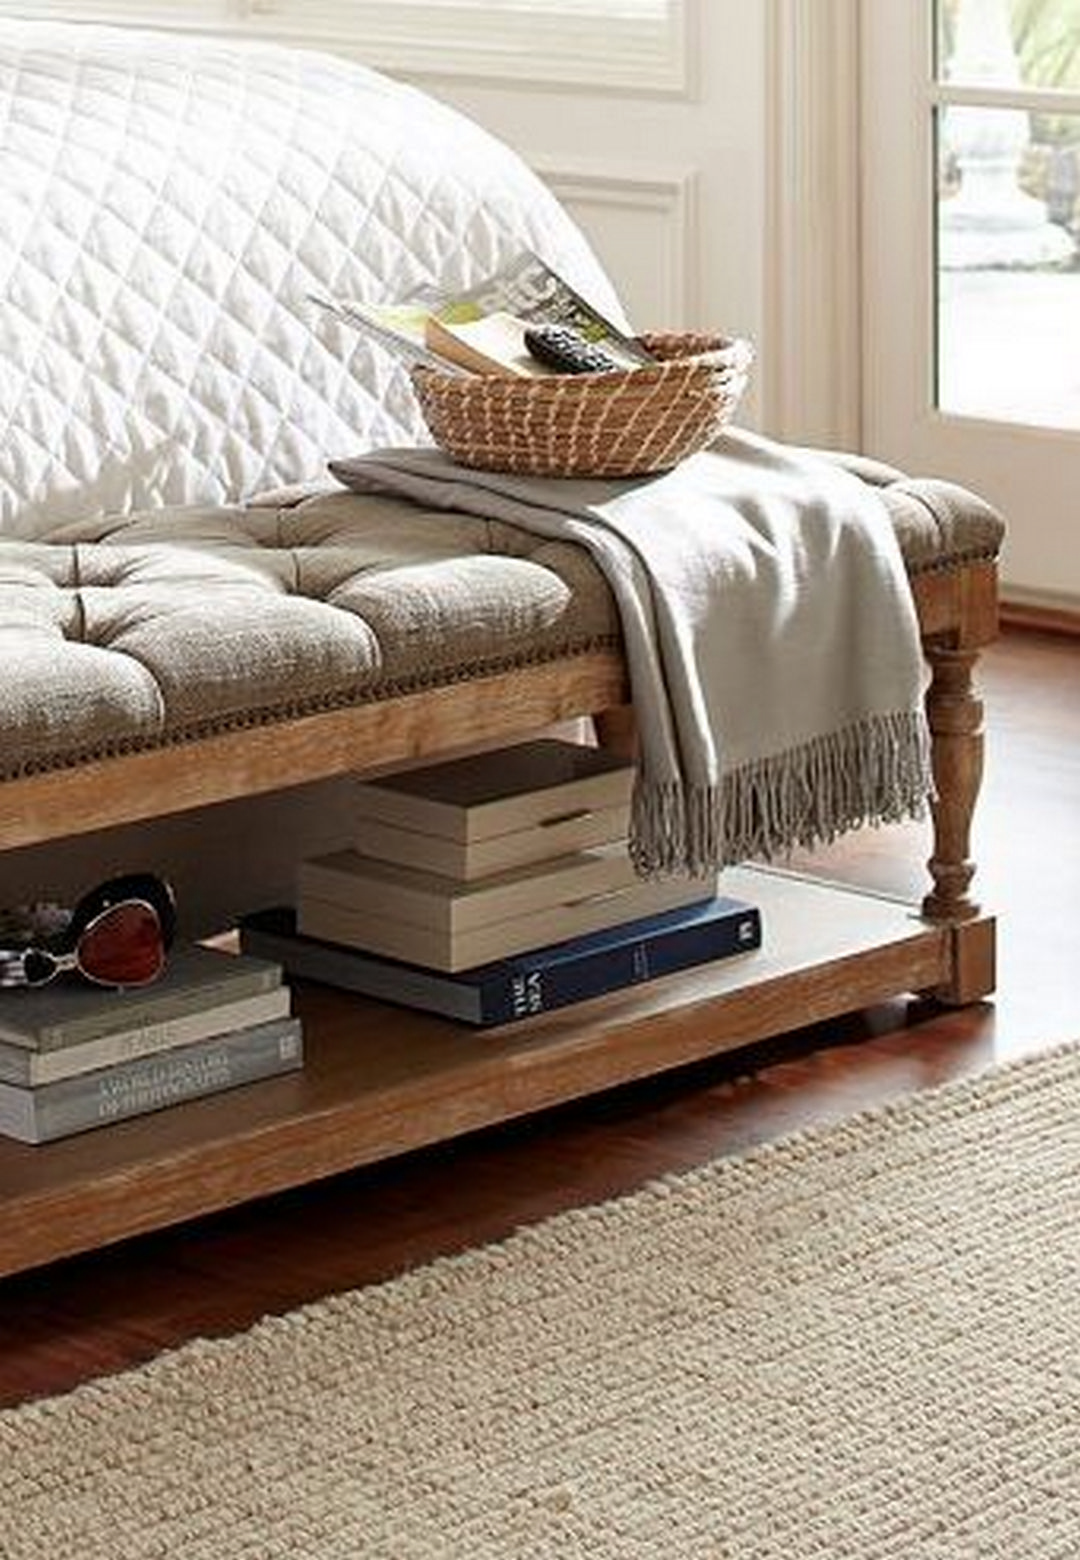 17 Stunning Diy Bedroom Storage Ideas End Of Bed Bench